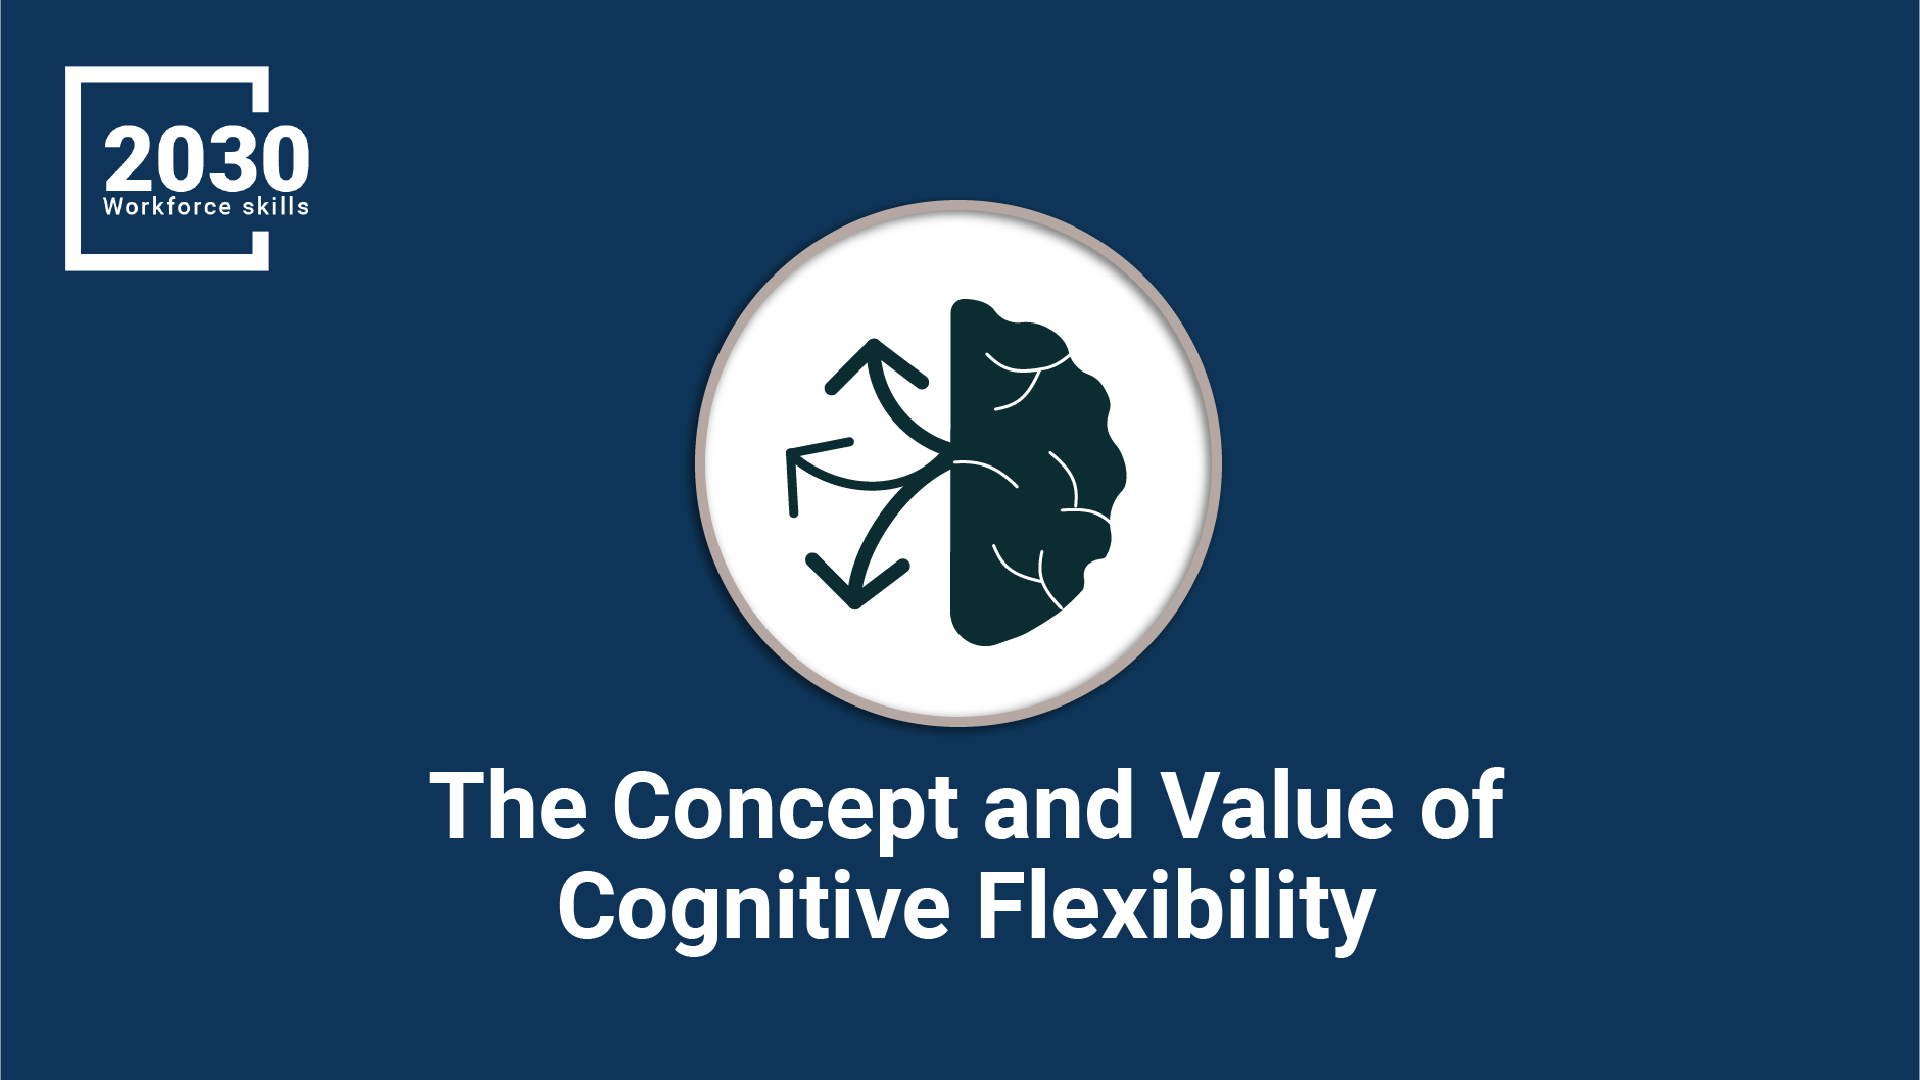 https://omnistackconnect.omnihrc.com/product/the-concept-and-value-of-cognitive-flexibility